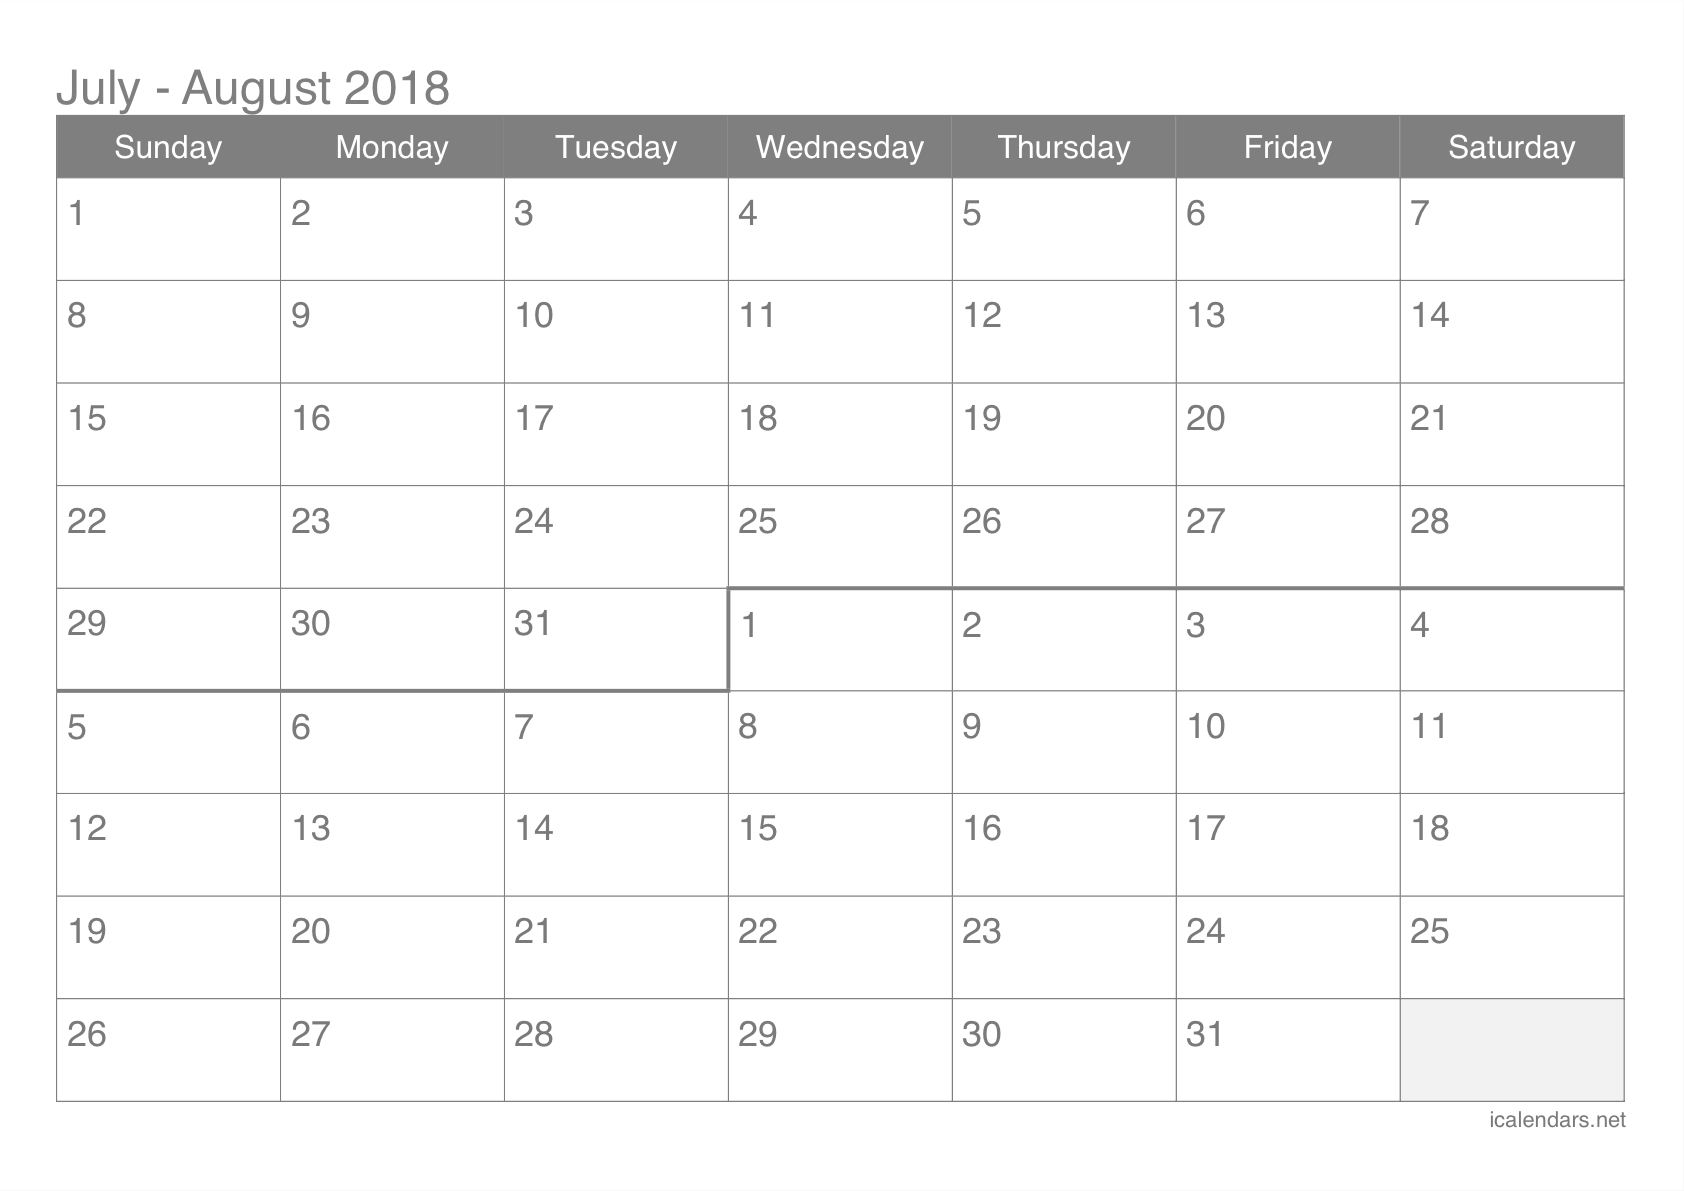 July And August 2018 Printable Calendar - Icalendars within Full Sheet November Calendar Template